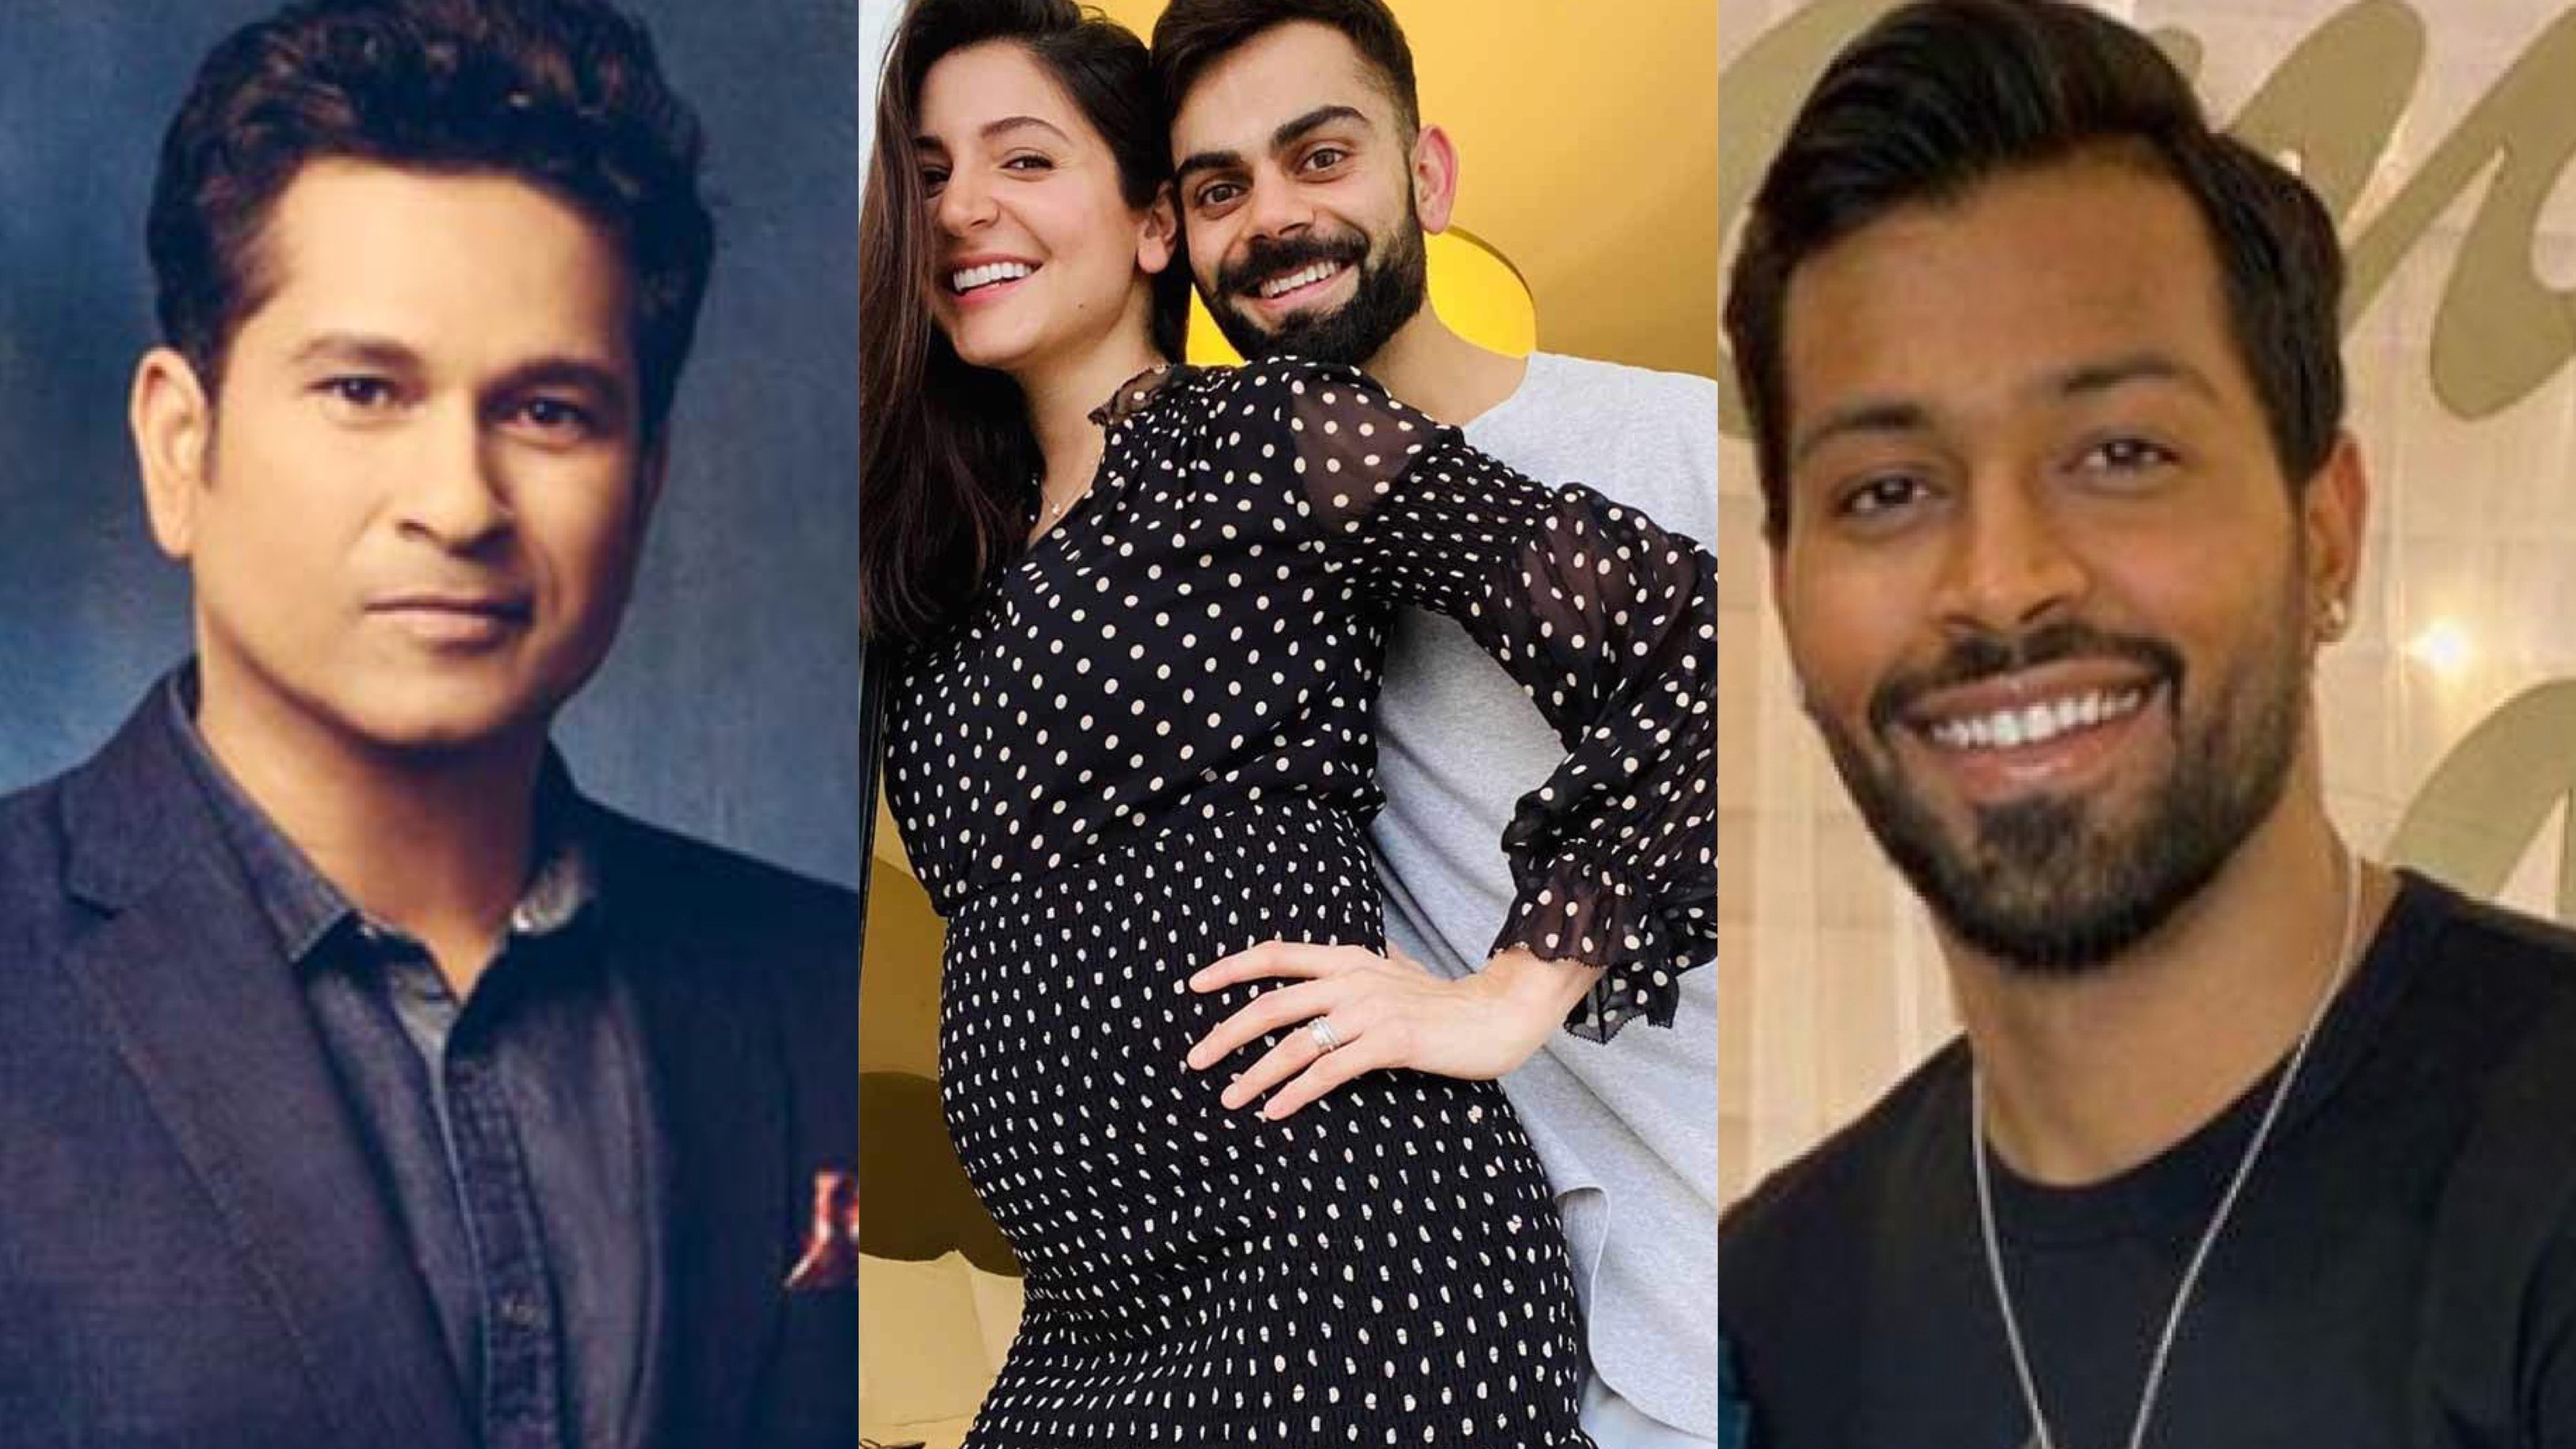 Virat Kohli and Anushka Sharma welcomed to parenting by the Indian cricket fraternity